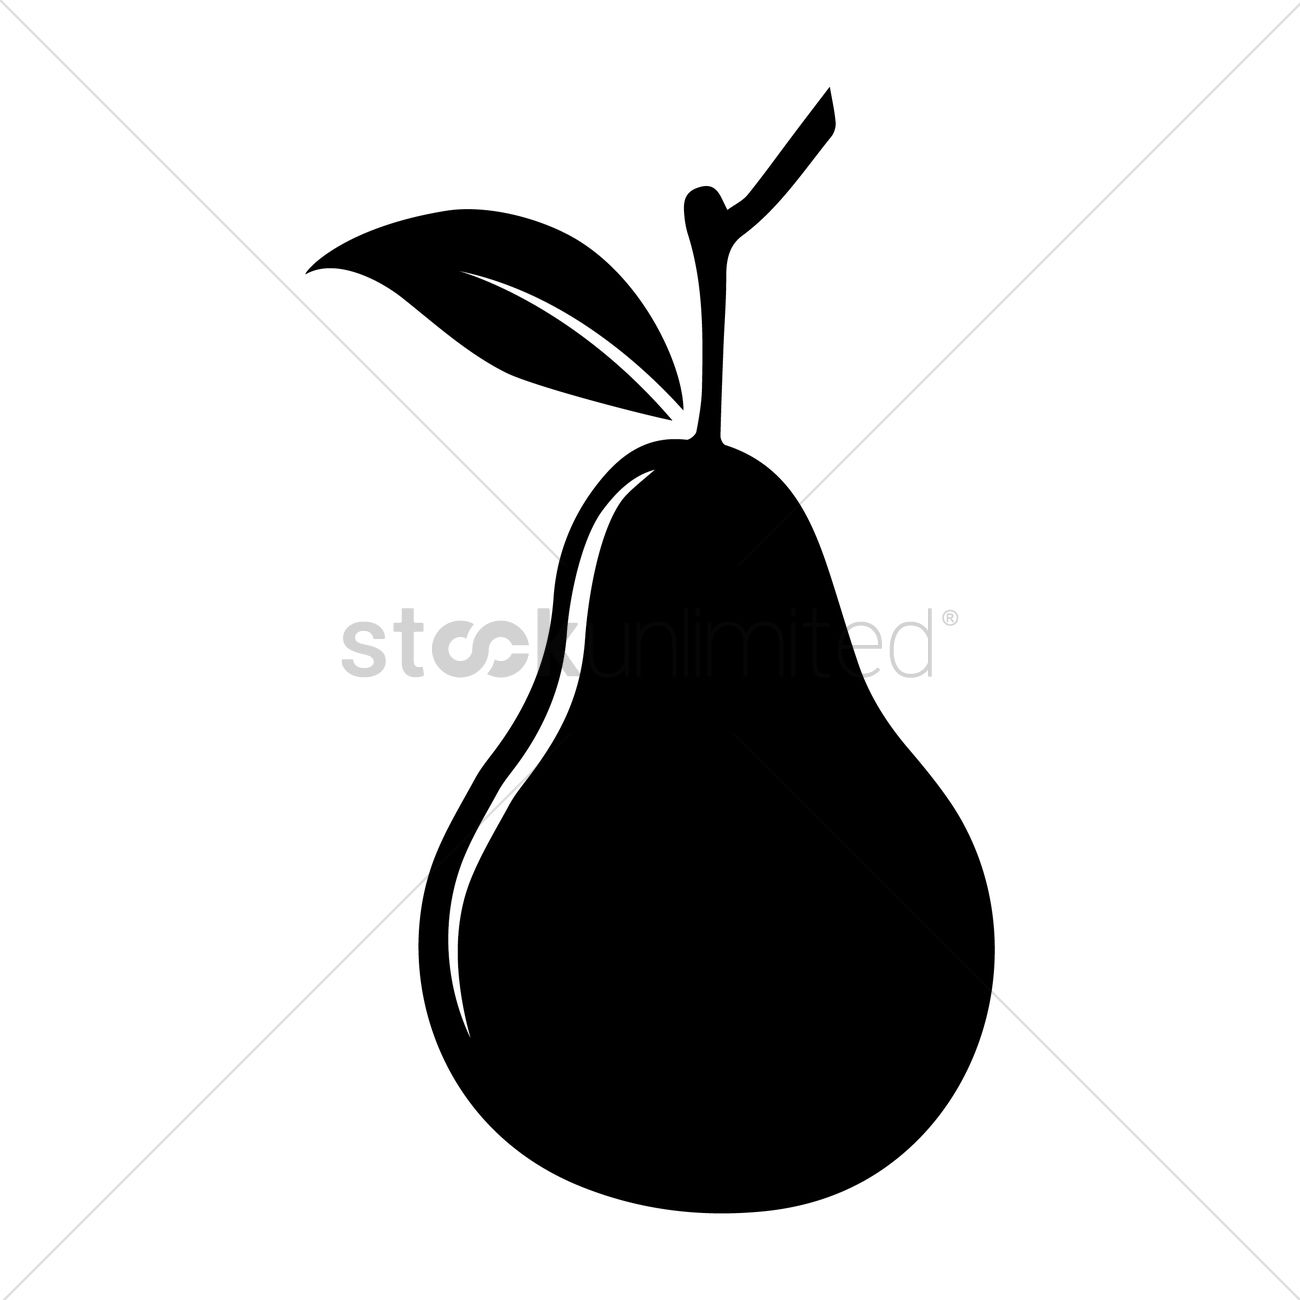 Image Result For Apple Stock